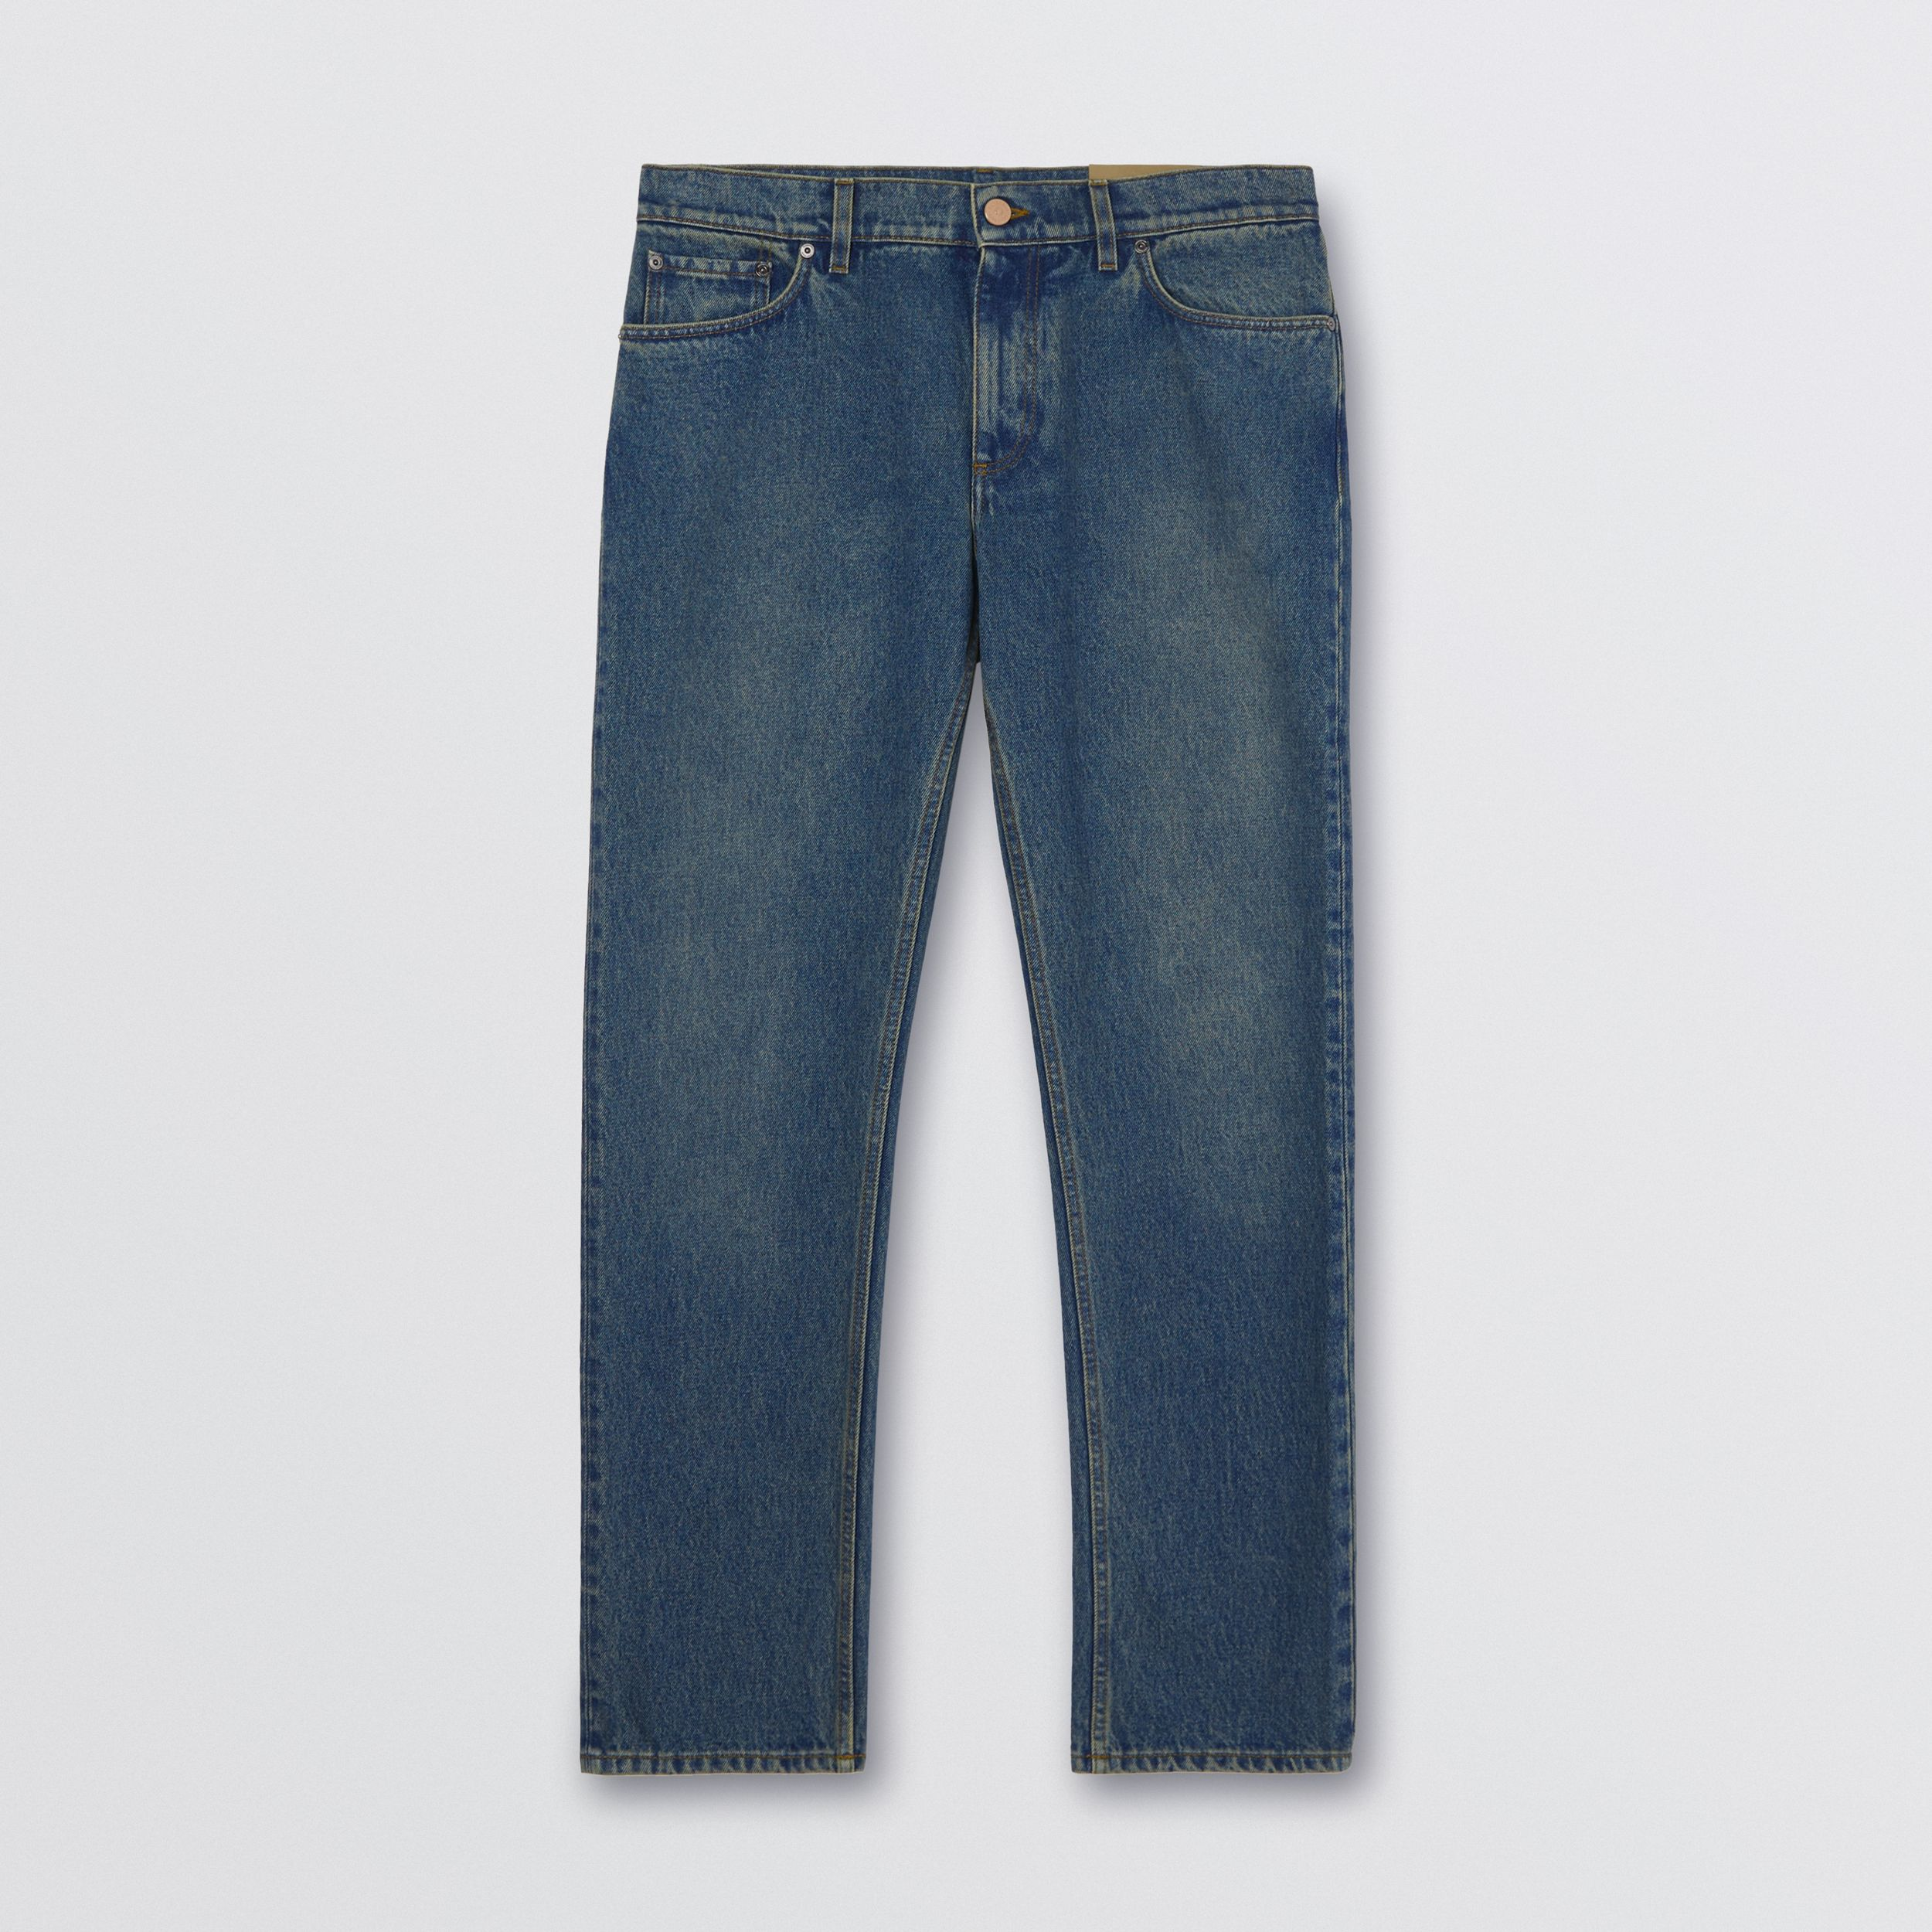 Straight Fit Washed Jeans in Indigo - Men | Burberry - 4